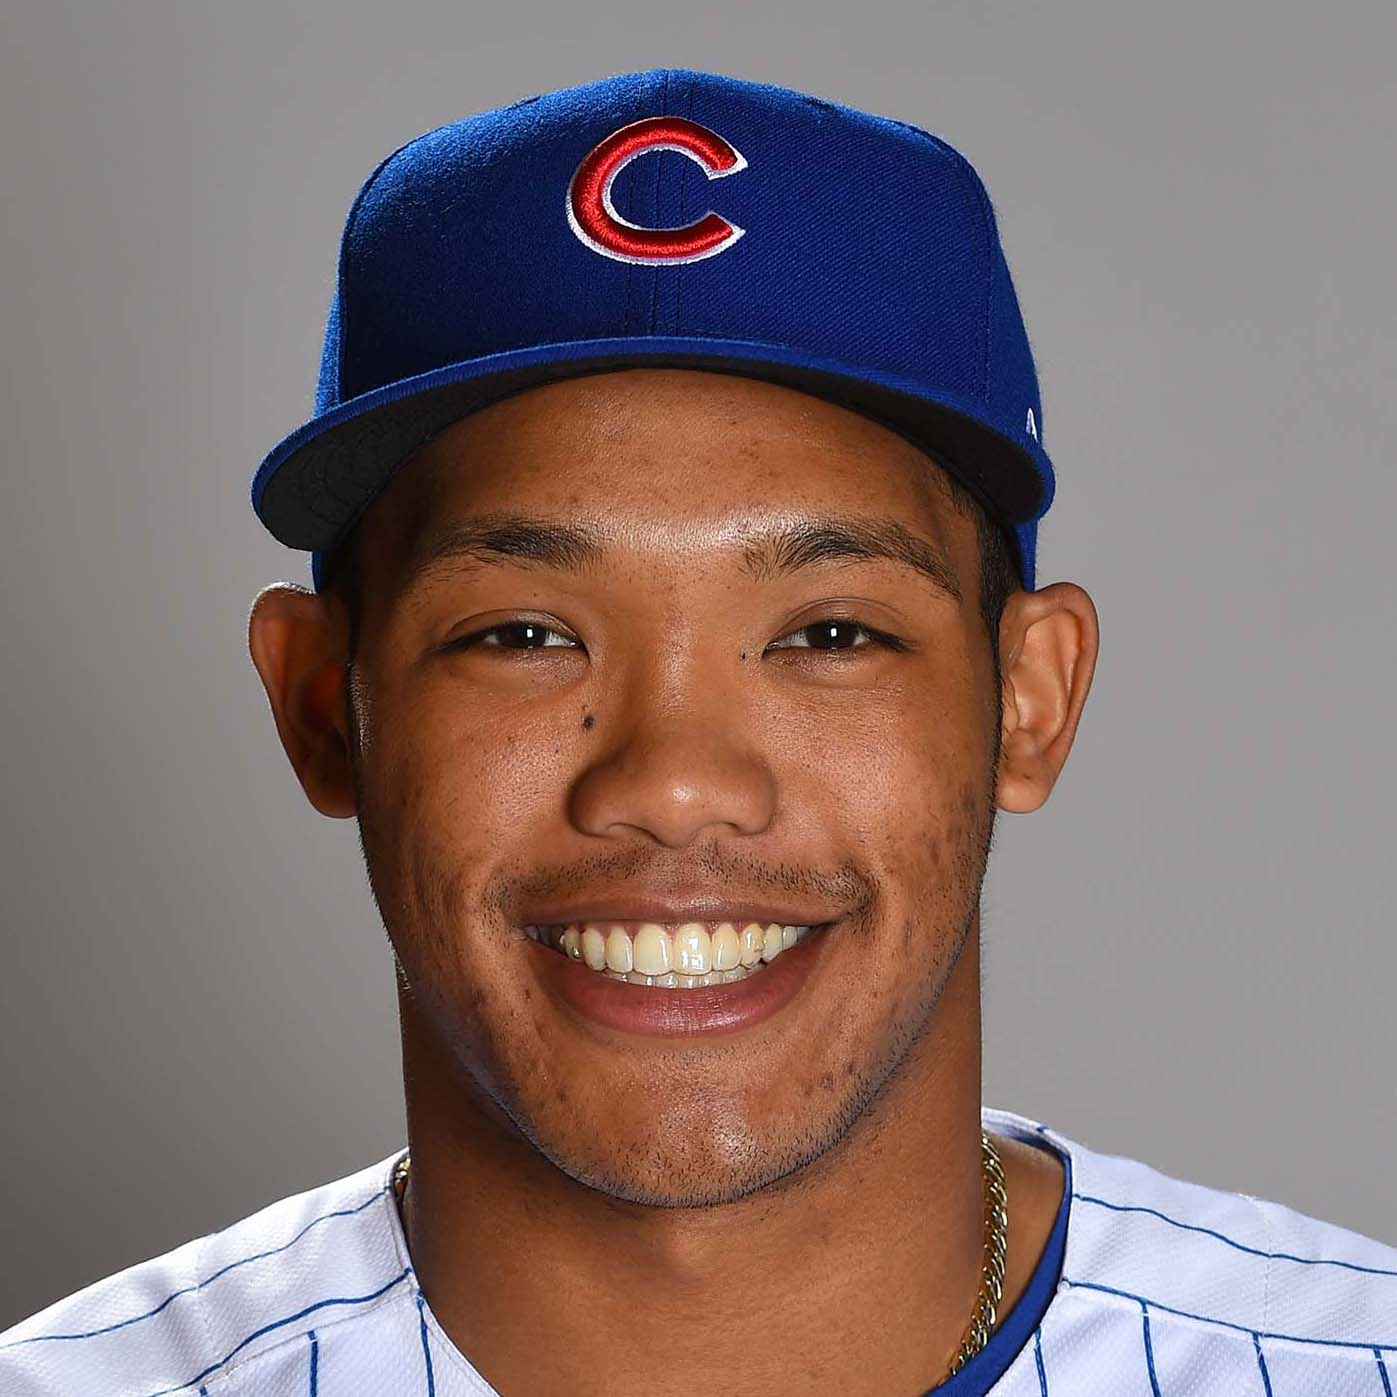 Addison Russell (R) Headshot